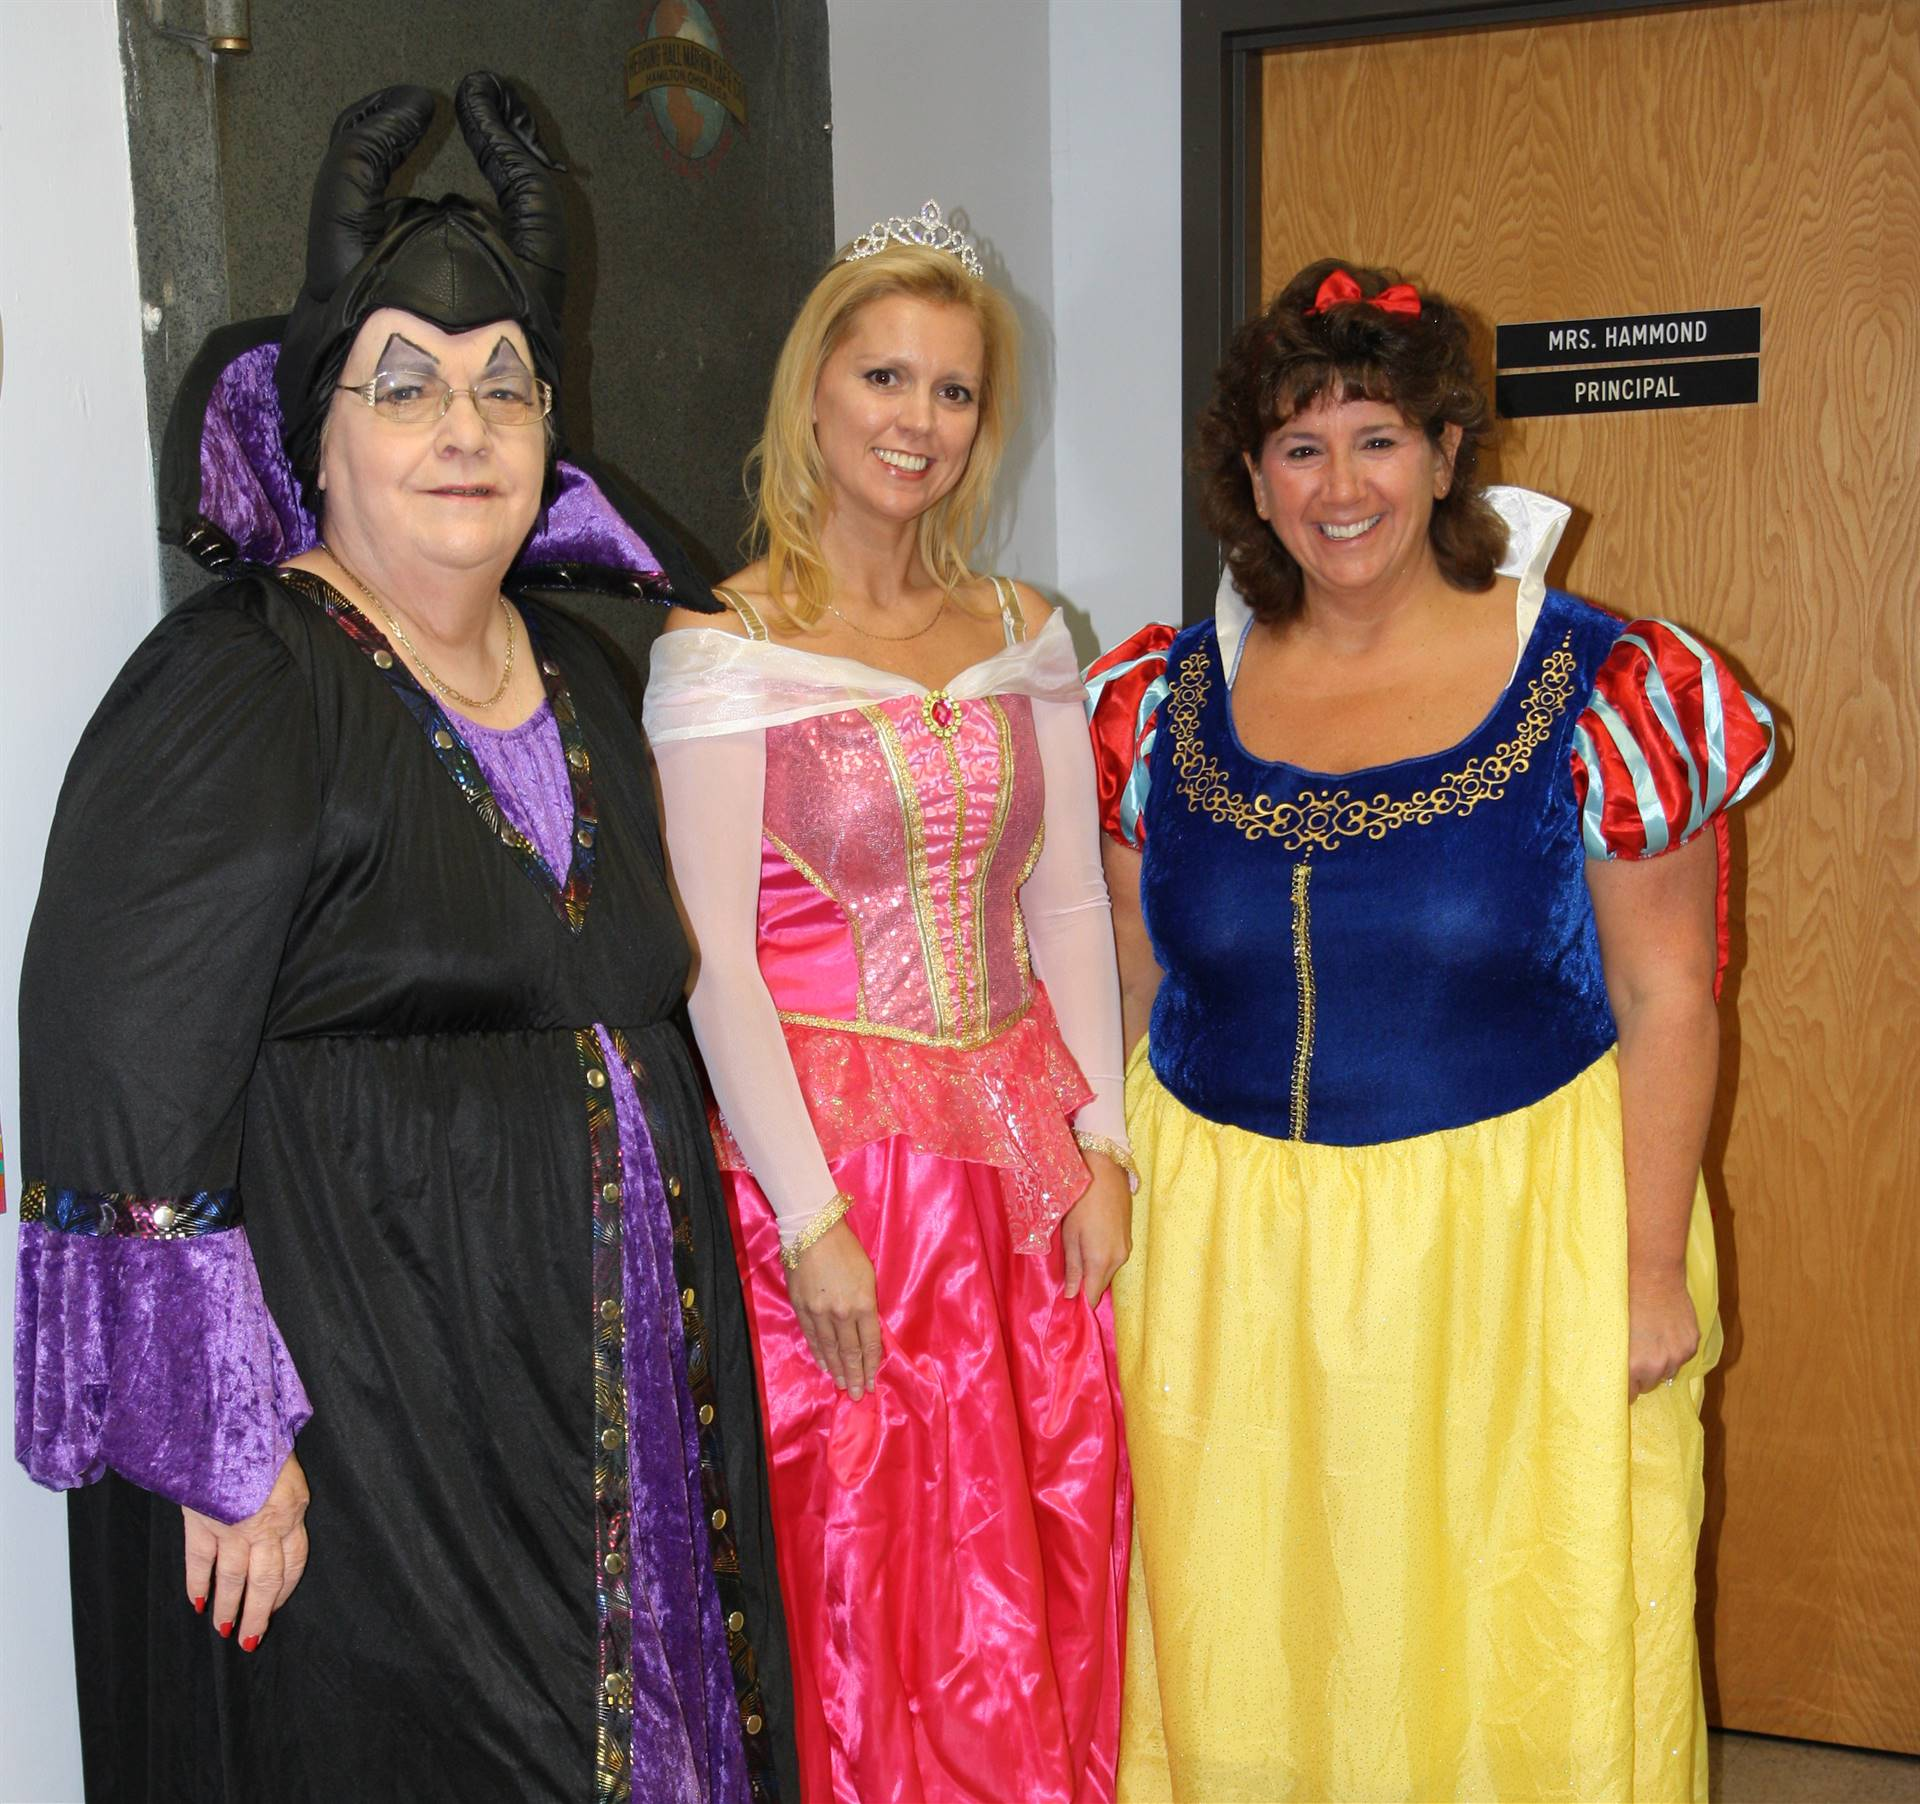 three chenango bridge staff members dressed up for halloween